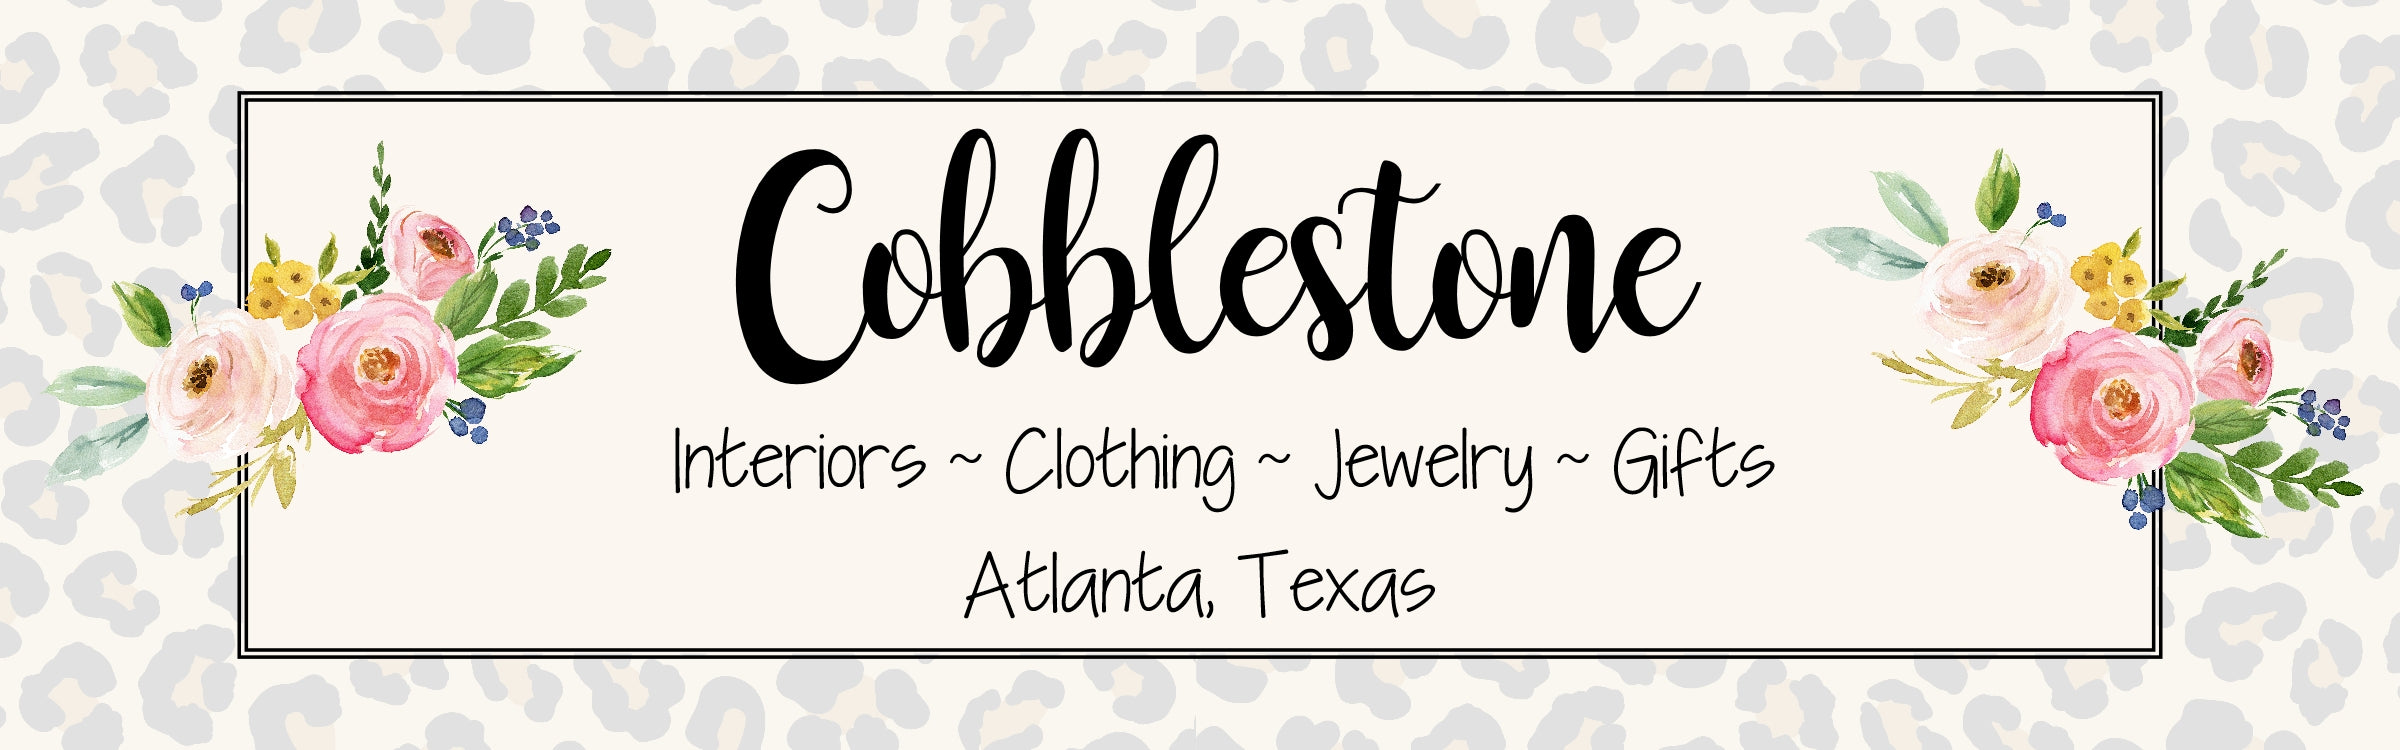 Cobblestone Interiors Clothing Jewelry Gifts